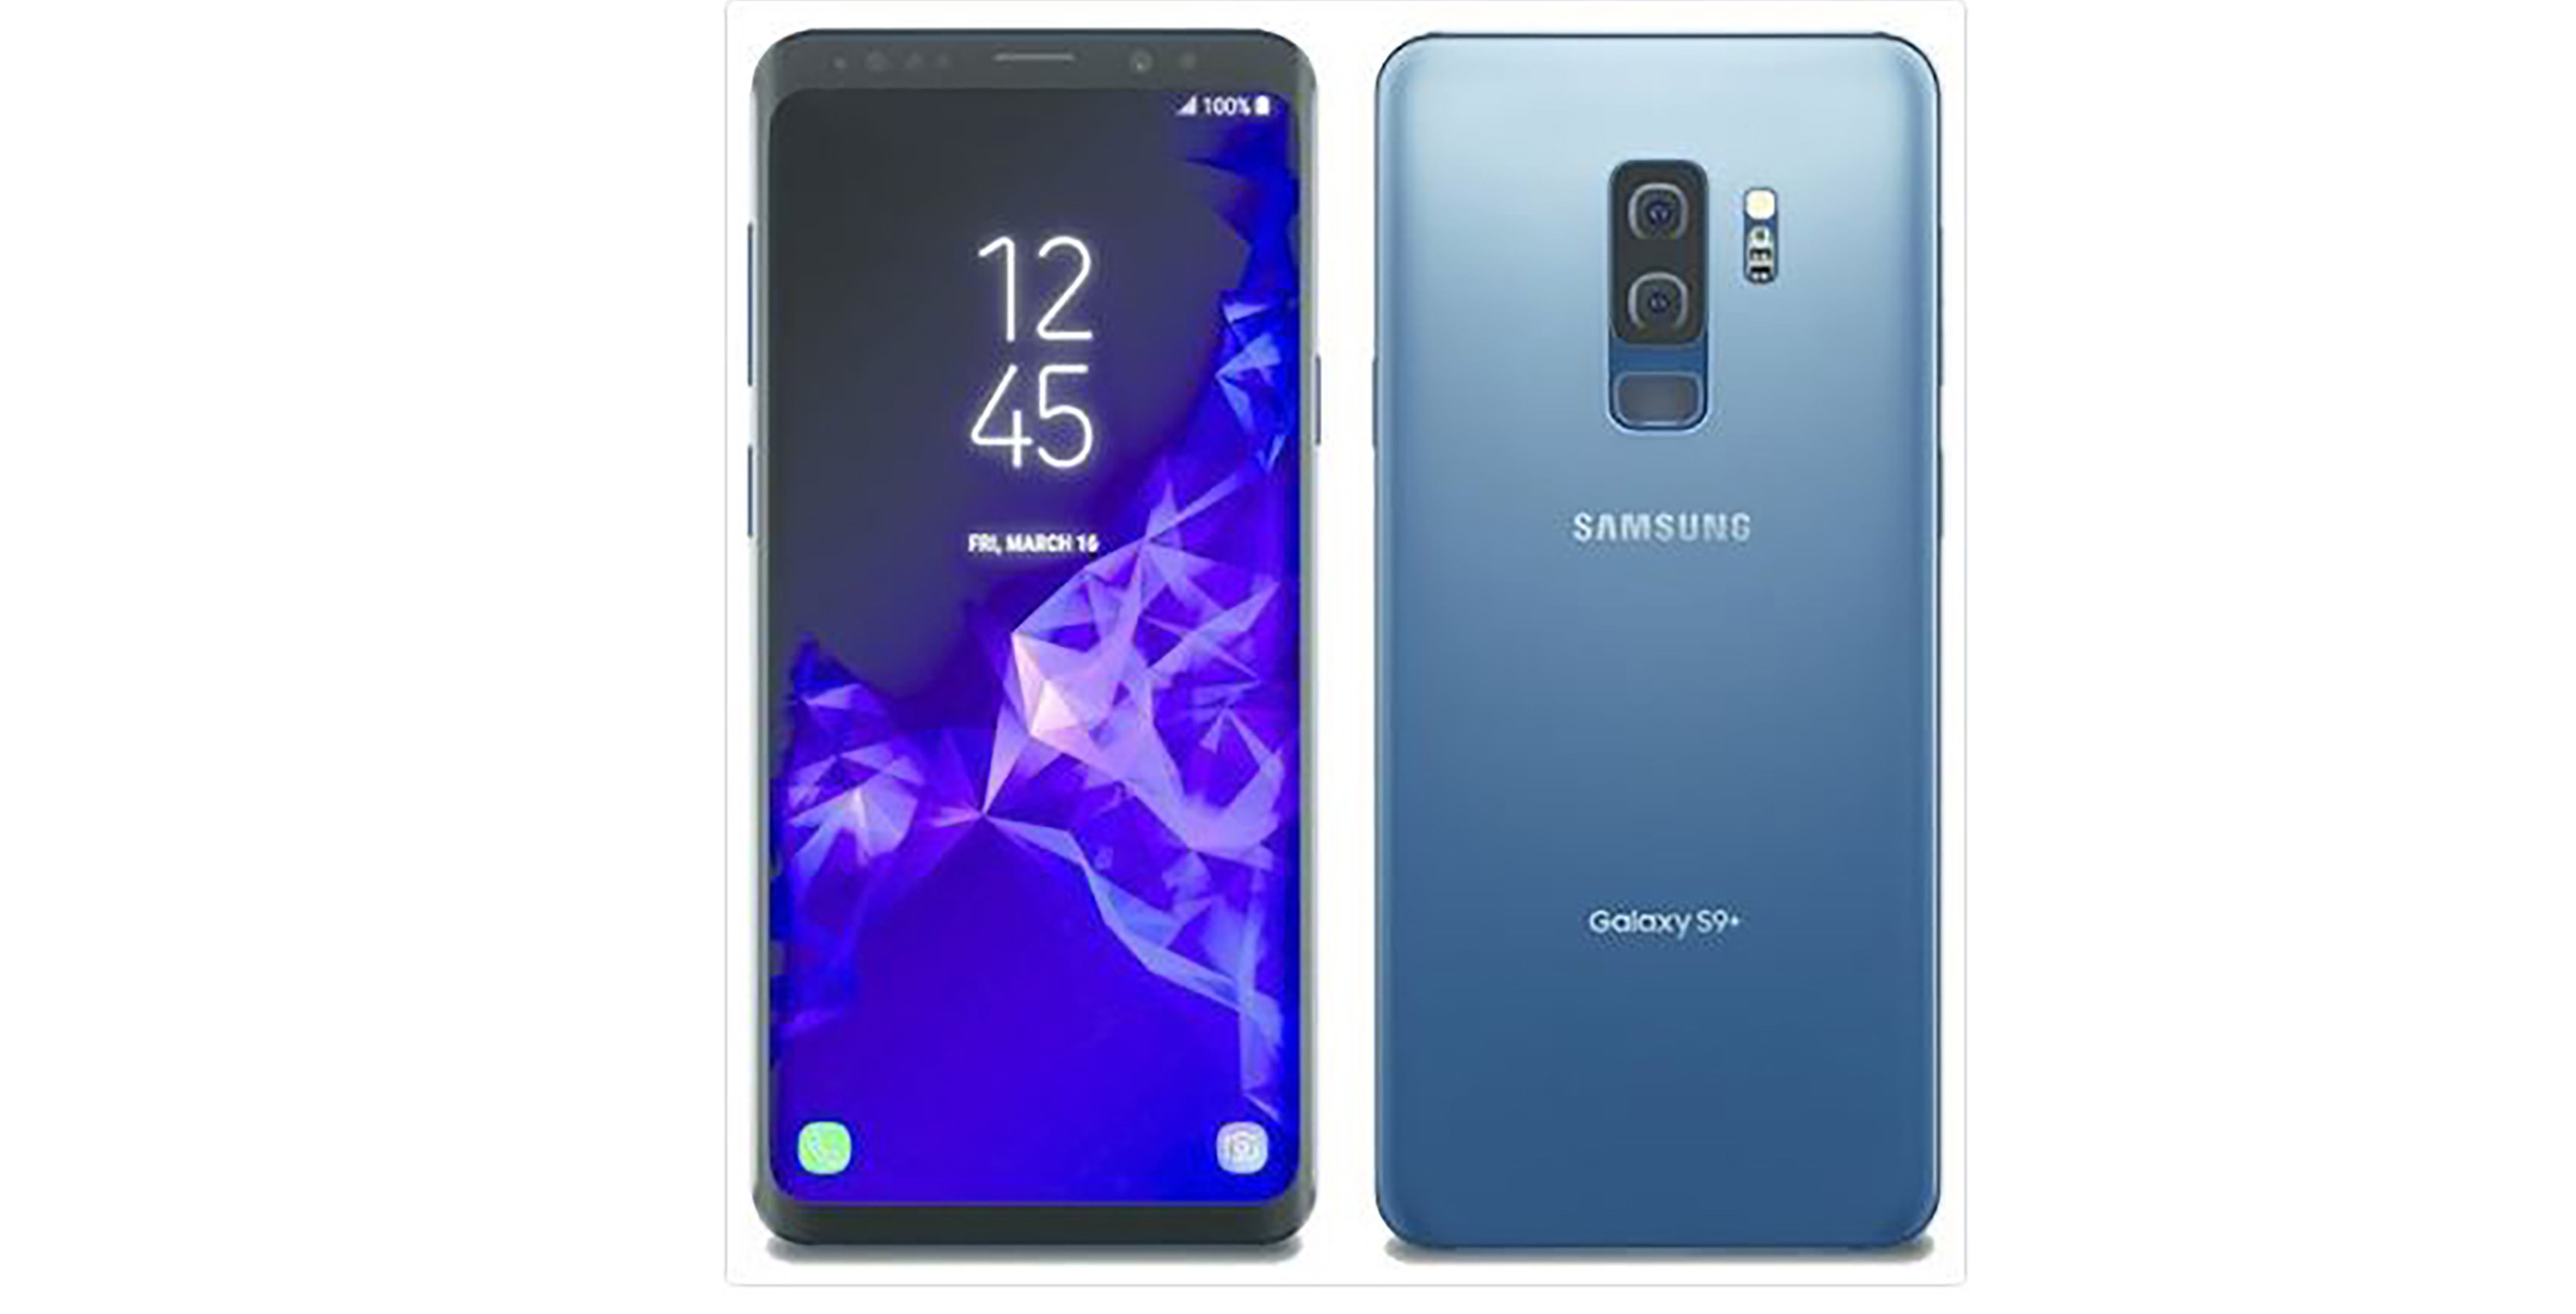 Galaxy S9 in coral blue